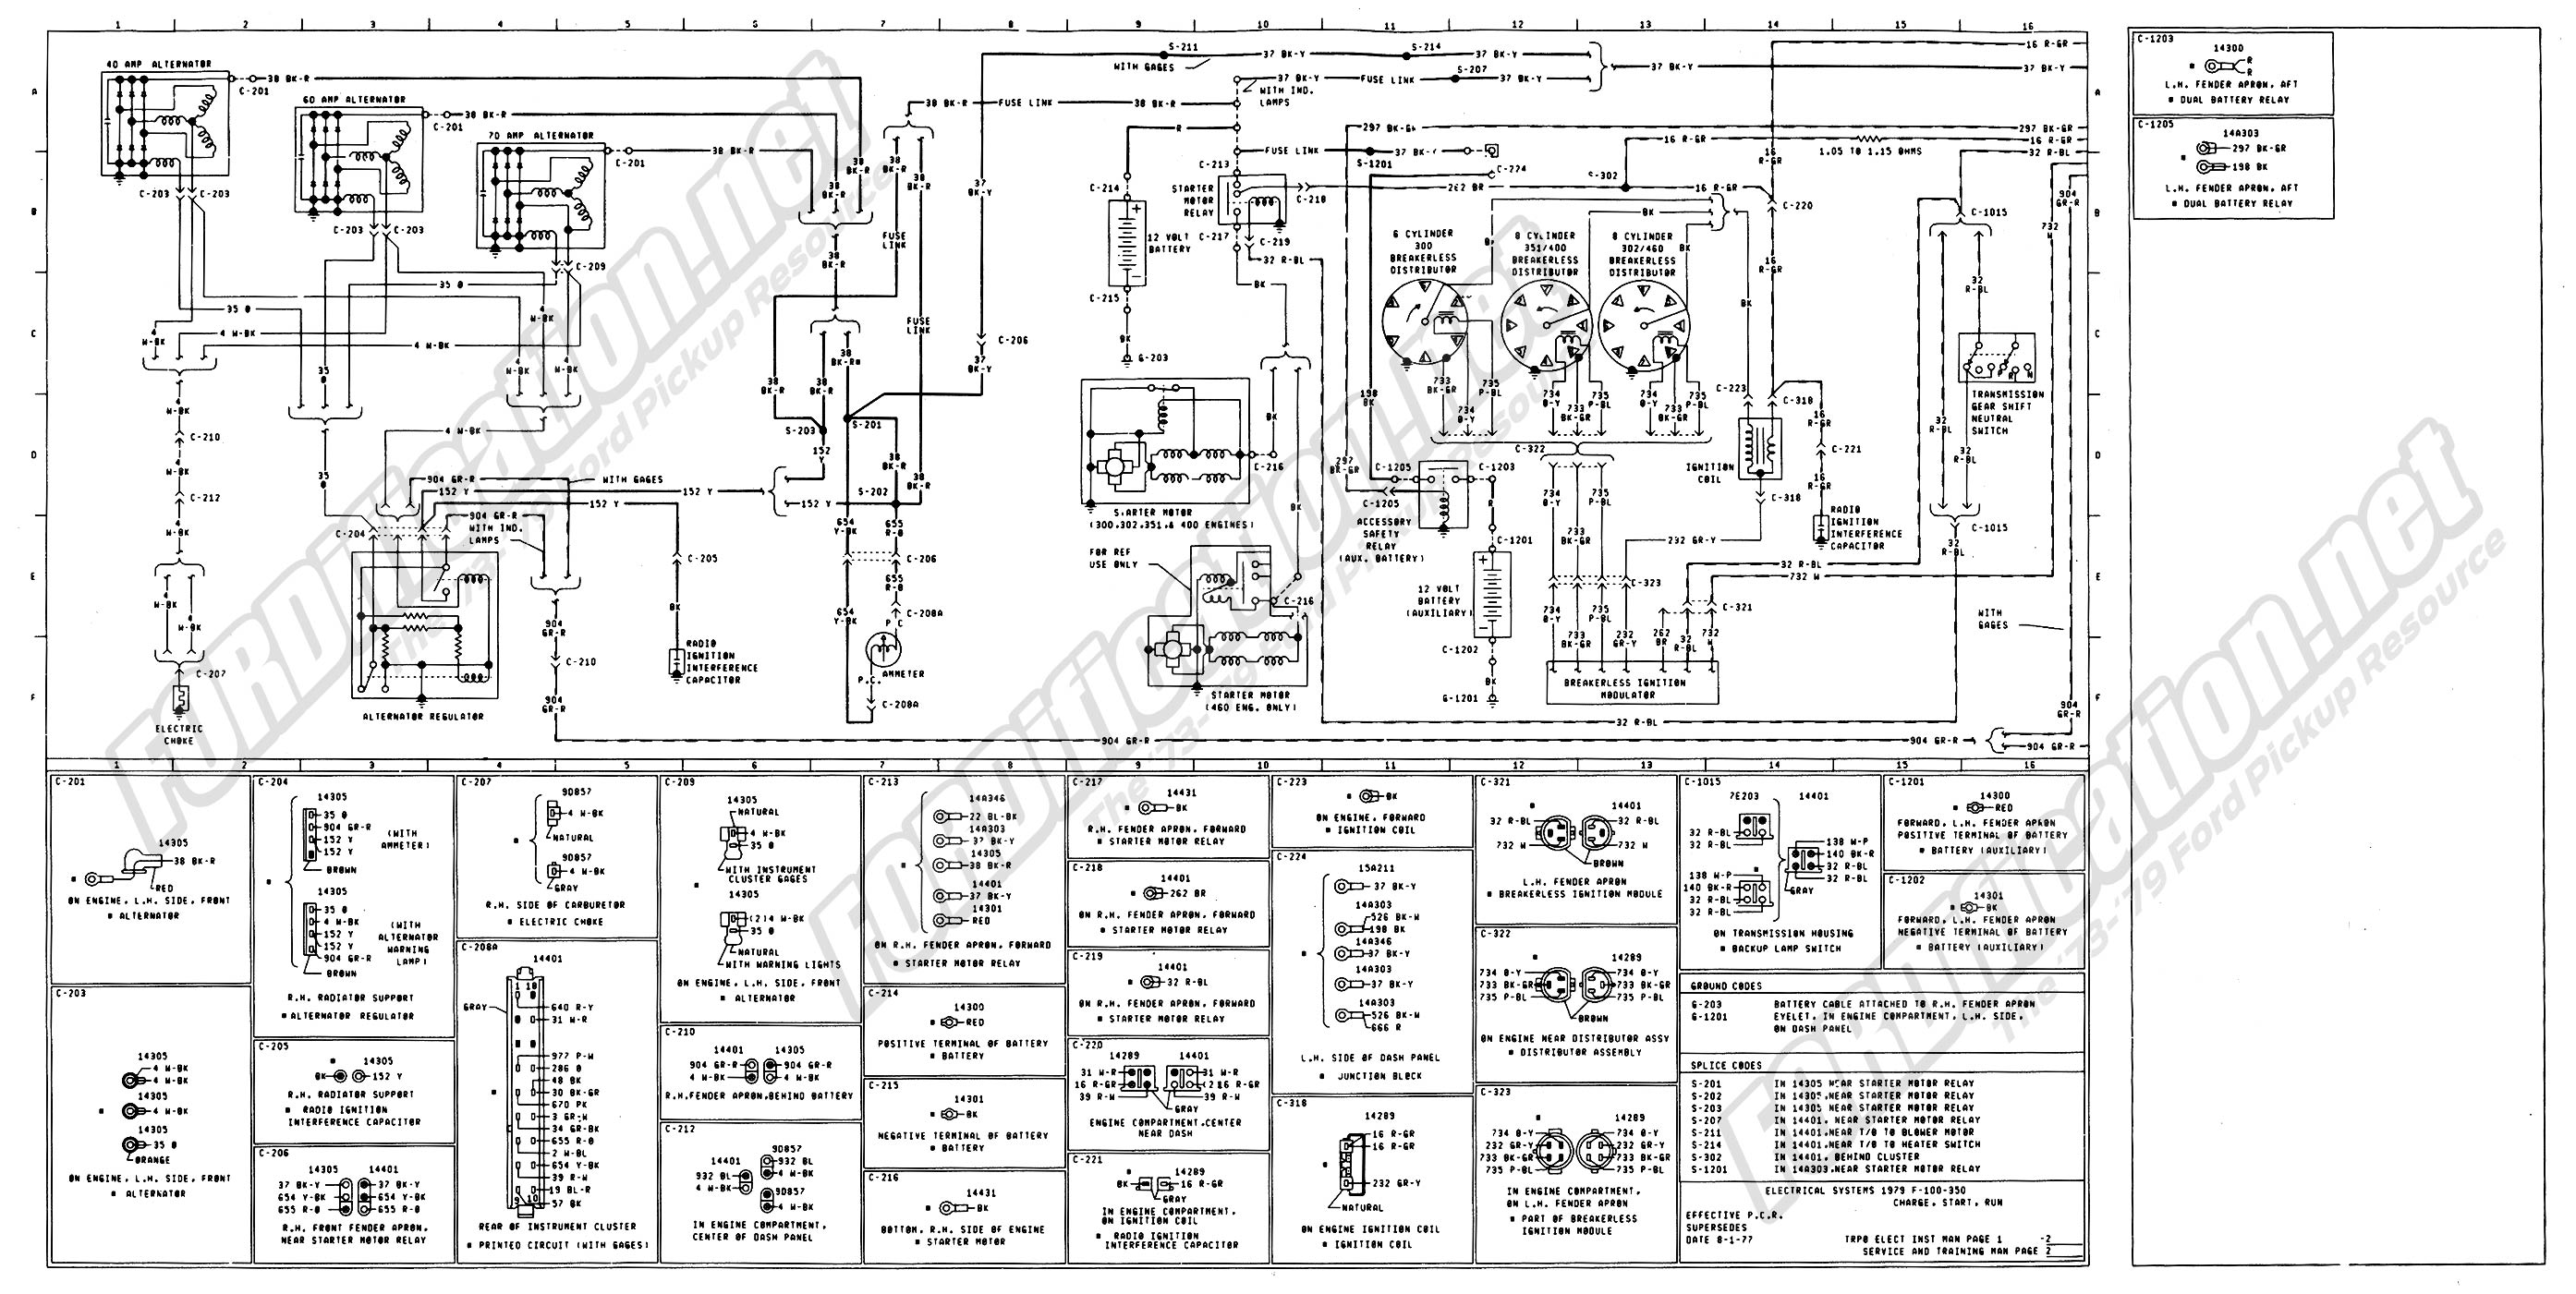 wiring_79master_2of9 1975 f150 ignition wiring diagram 97 f150 wiring diagram \u2022 wiring 2002 f150 alternator wiring diagram at eliteediting.co